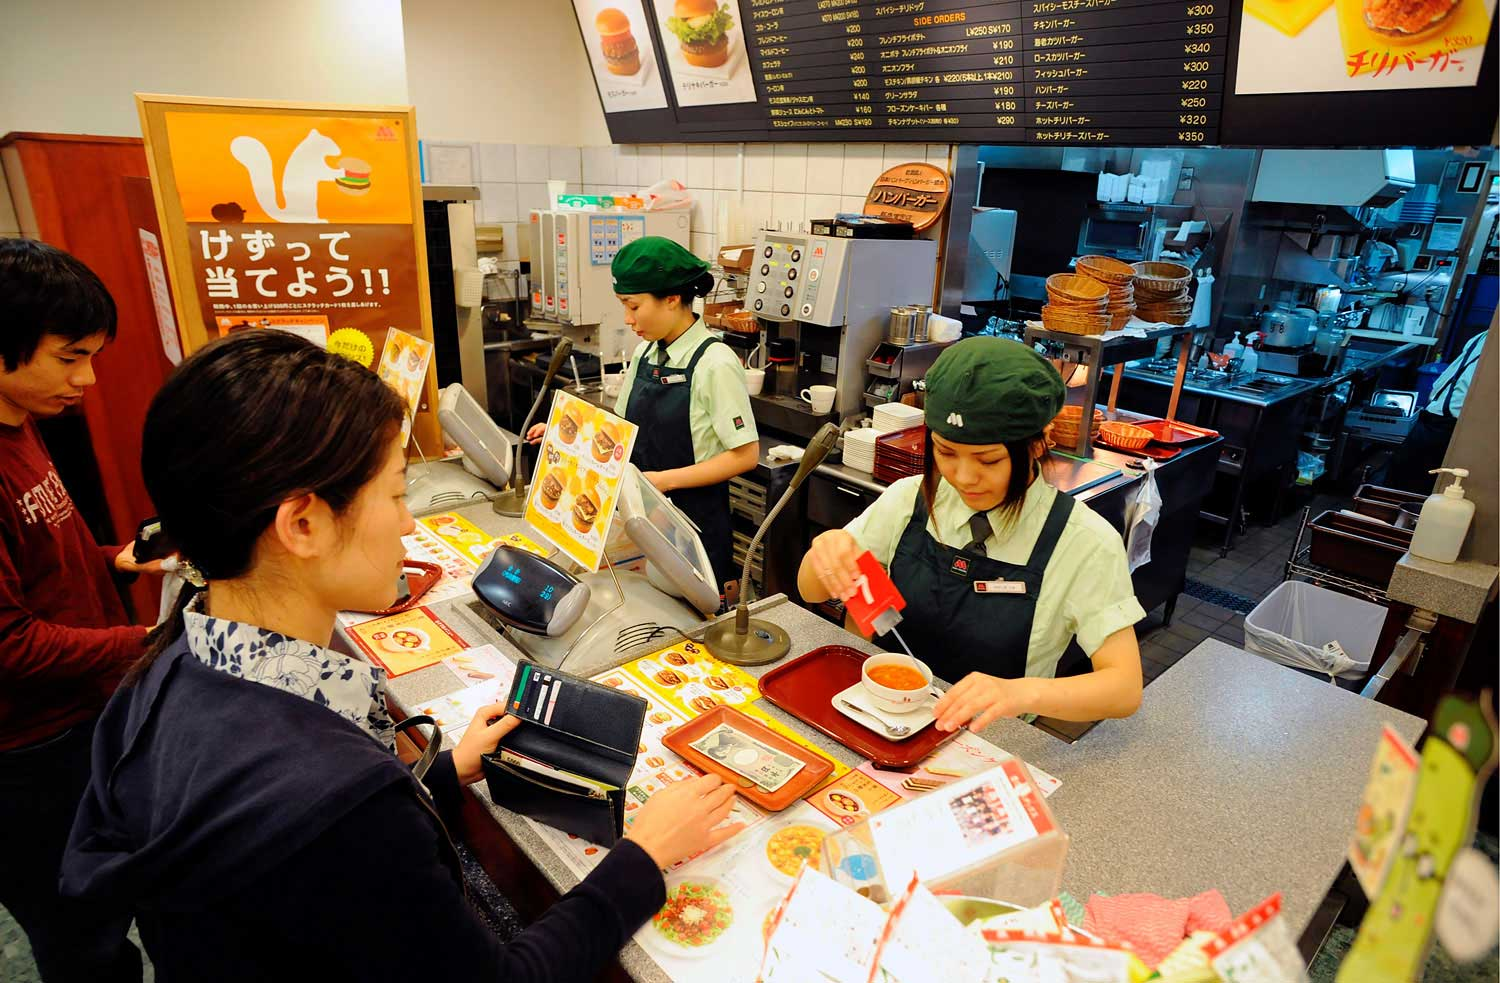 Japan - Fast Food - Mos Food Services - Hamburger Chain